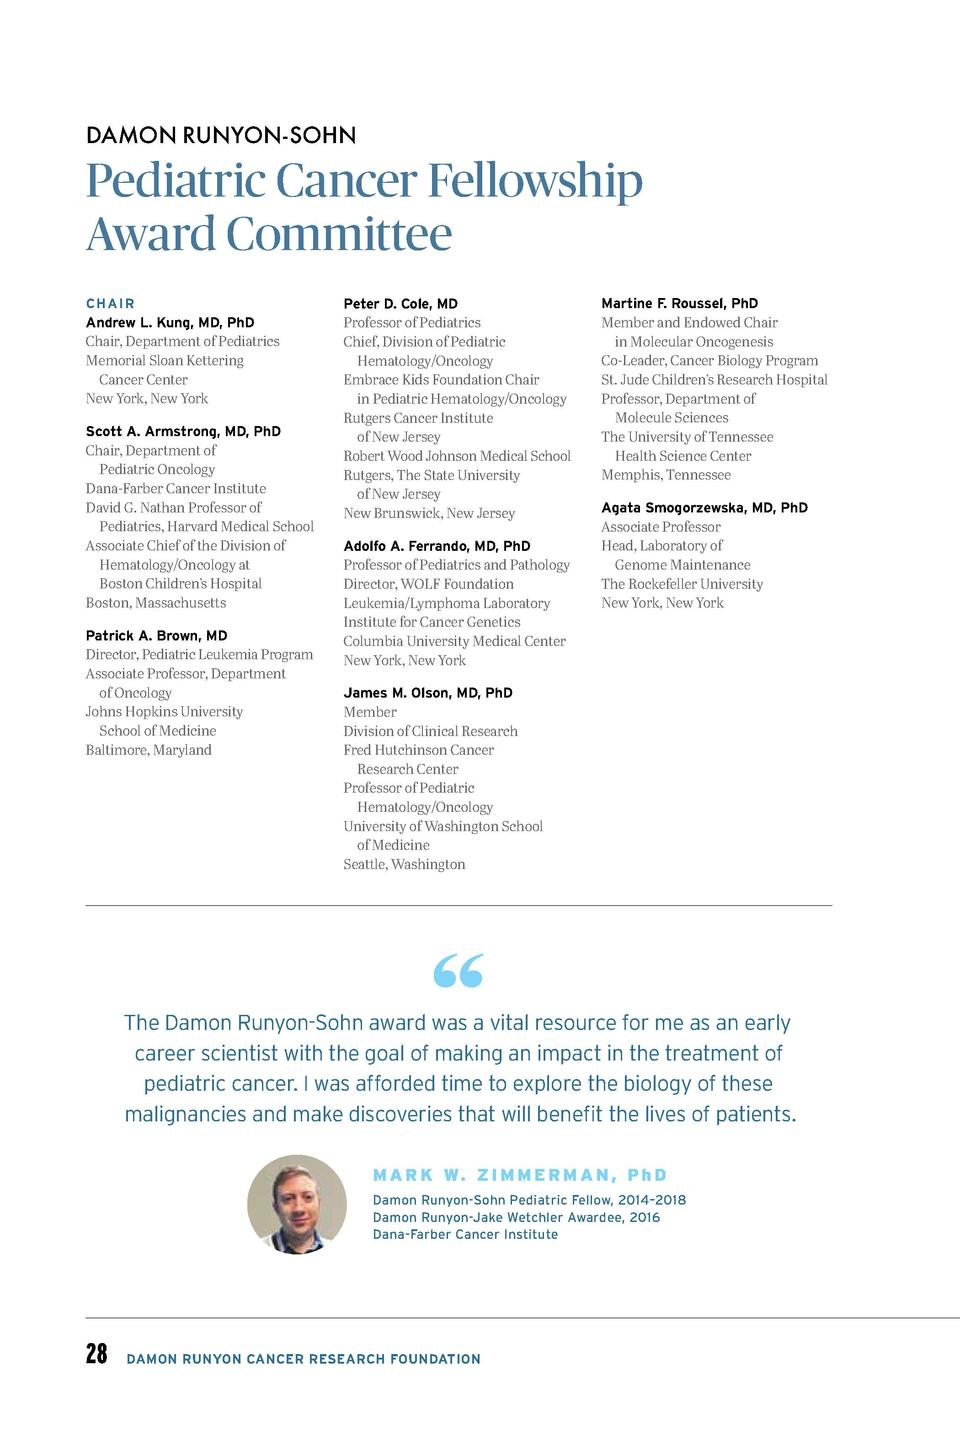 DAMON RUNYON-SOHN  Pediatric Cancer Fellowship Award Committee CHAIR  Andrew L. Kung, MD, PhD Chair, Department of Pediatr...